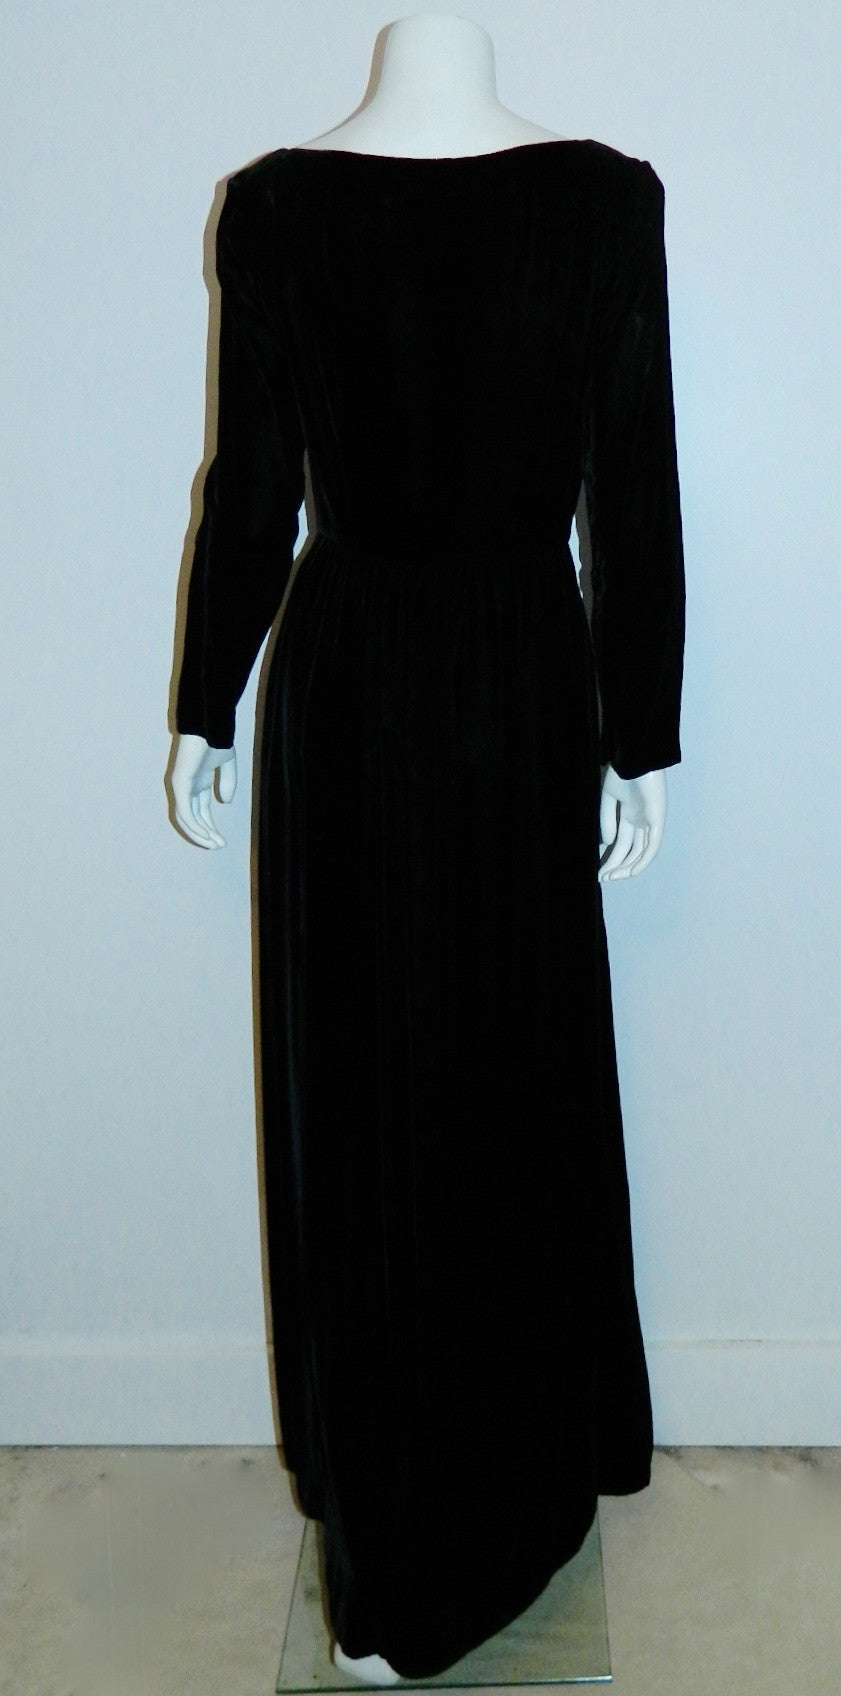 vintage 1960s black evening gown MOLLIE PARNIS dress / rayon velvet wrap front XS